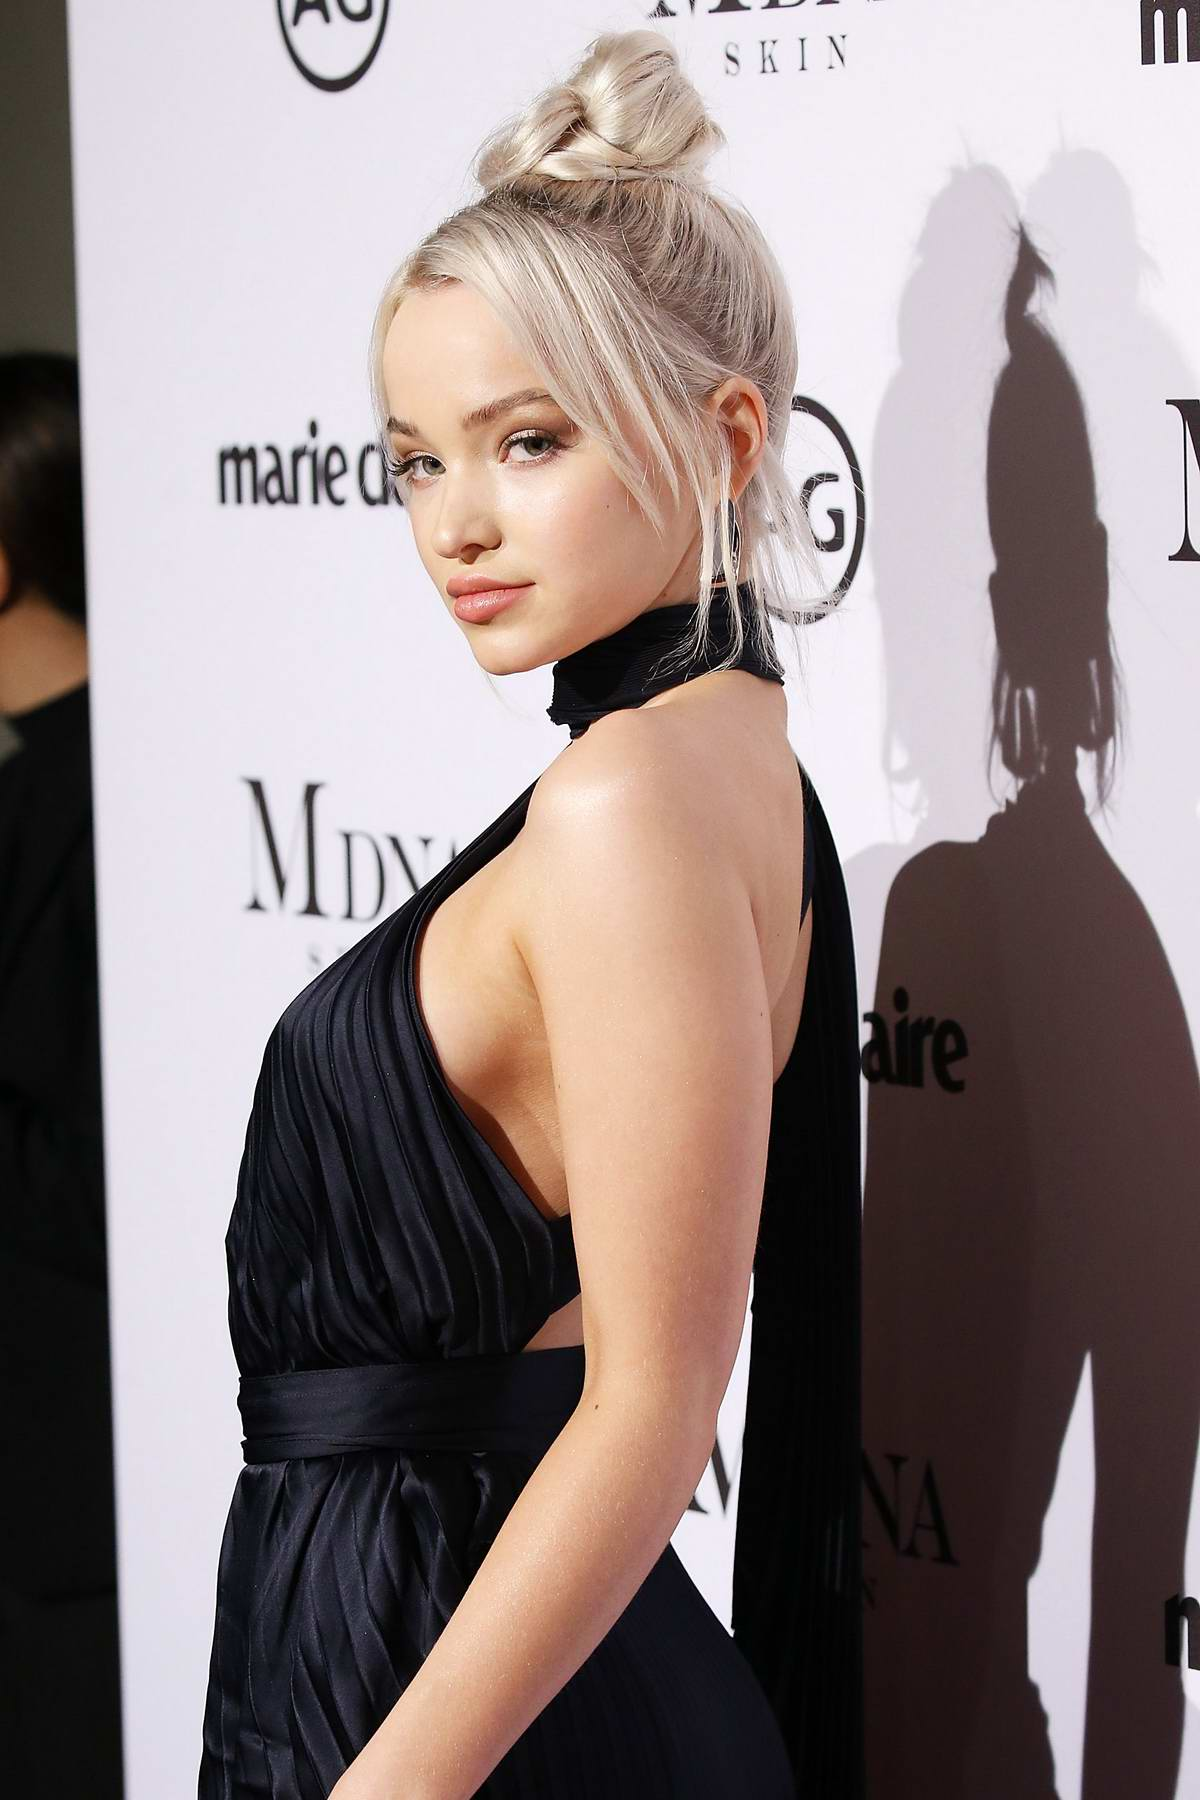 Dove Cameron at The Marie Claire Image Makers Awards at Delilah in West Hollywood, Los Angeles